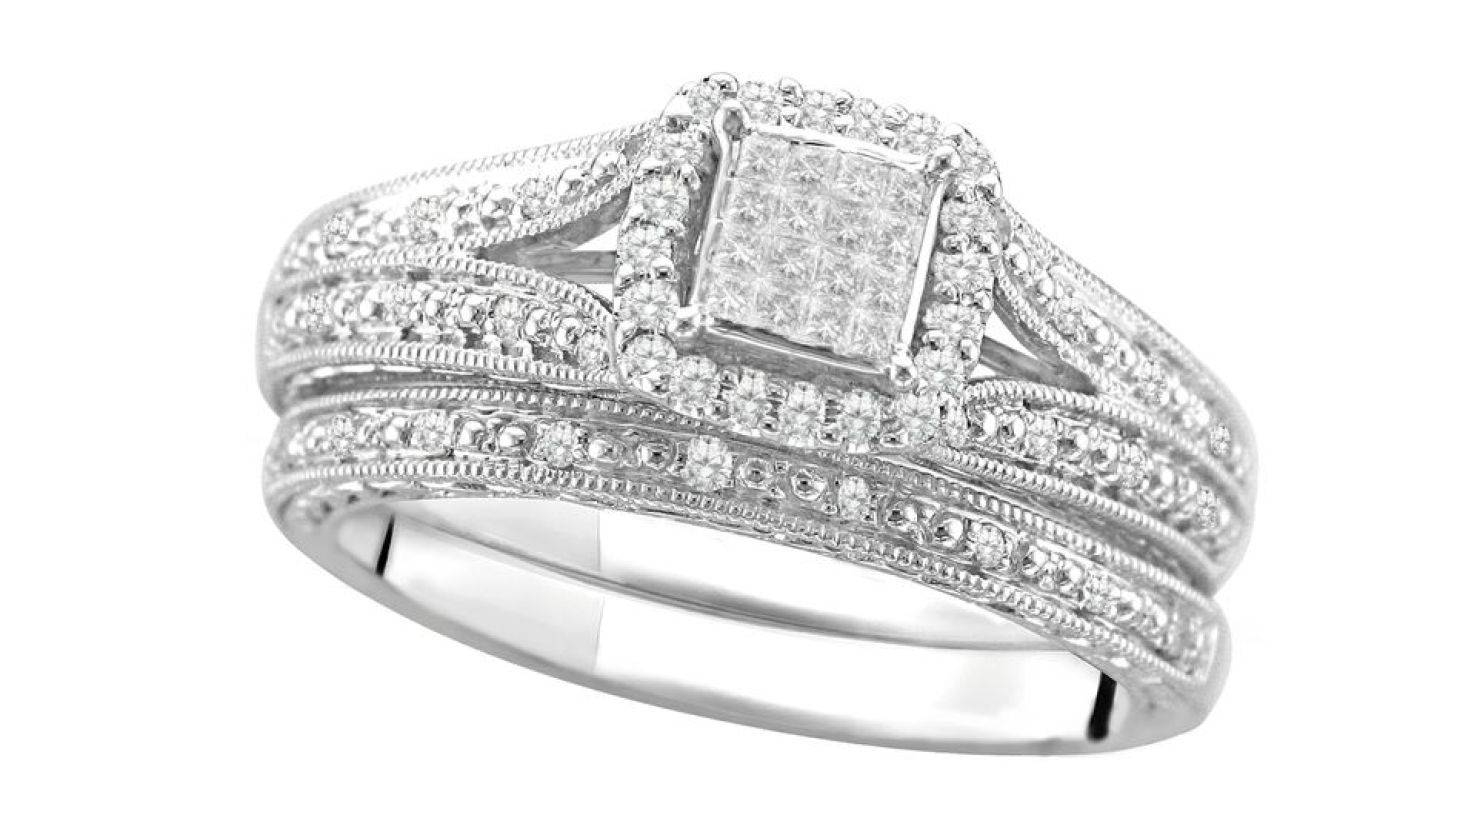 Wedding Rings : Weddingringideas Wonderful Wedding Rings At Within Walmart Wedding Bands For Men (View 15 of 15)